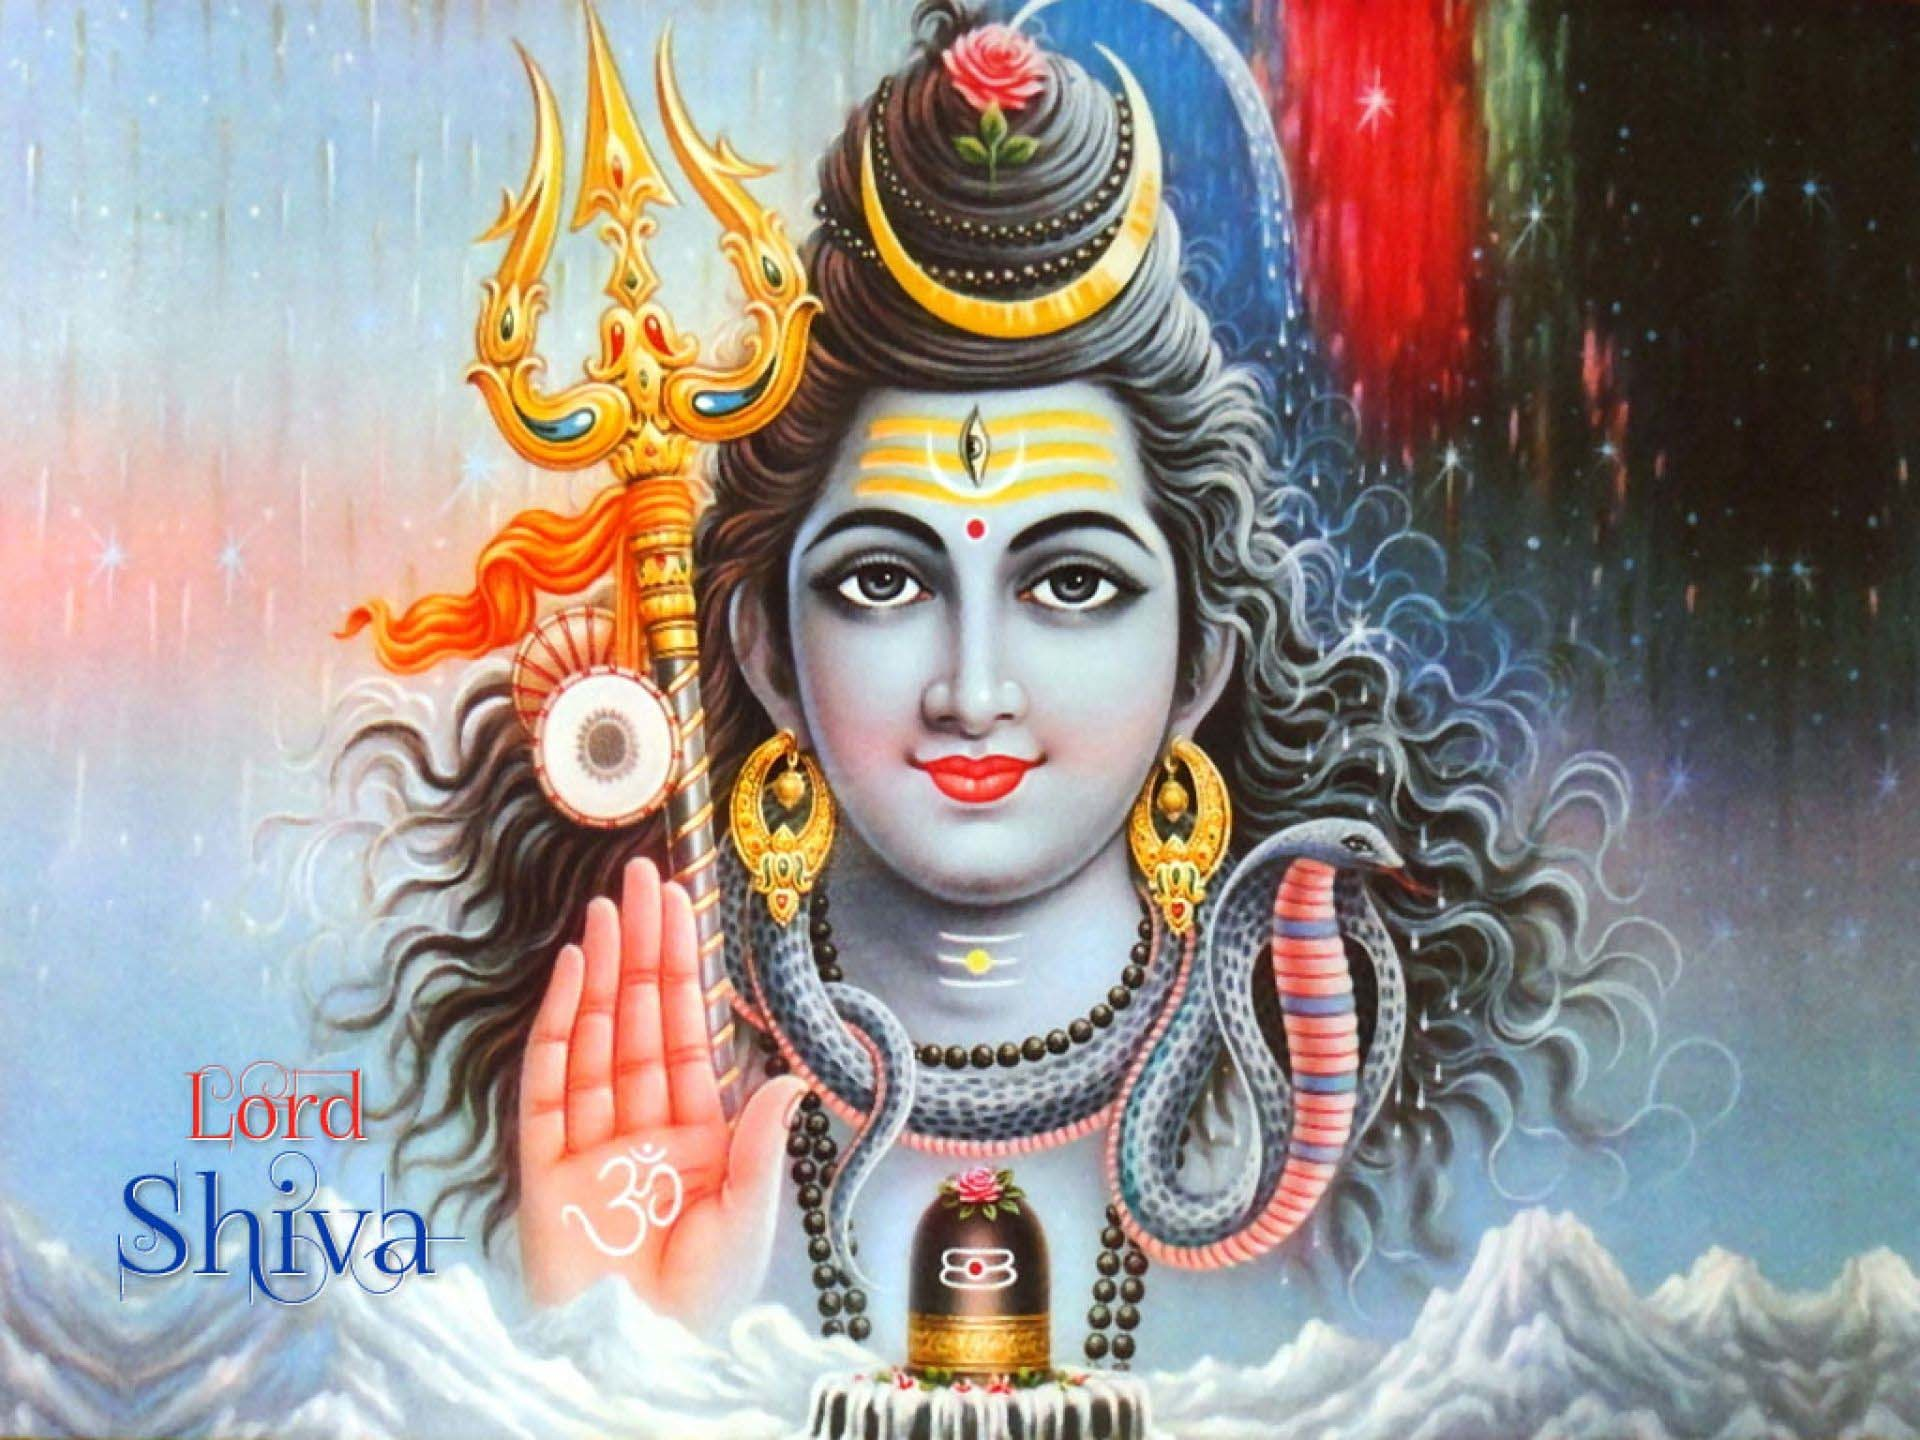 Lord shiva wallpapers high resolution 73 images - God images wallpapers ...